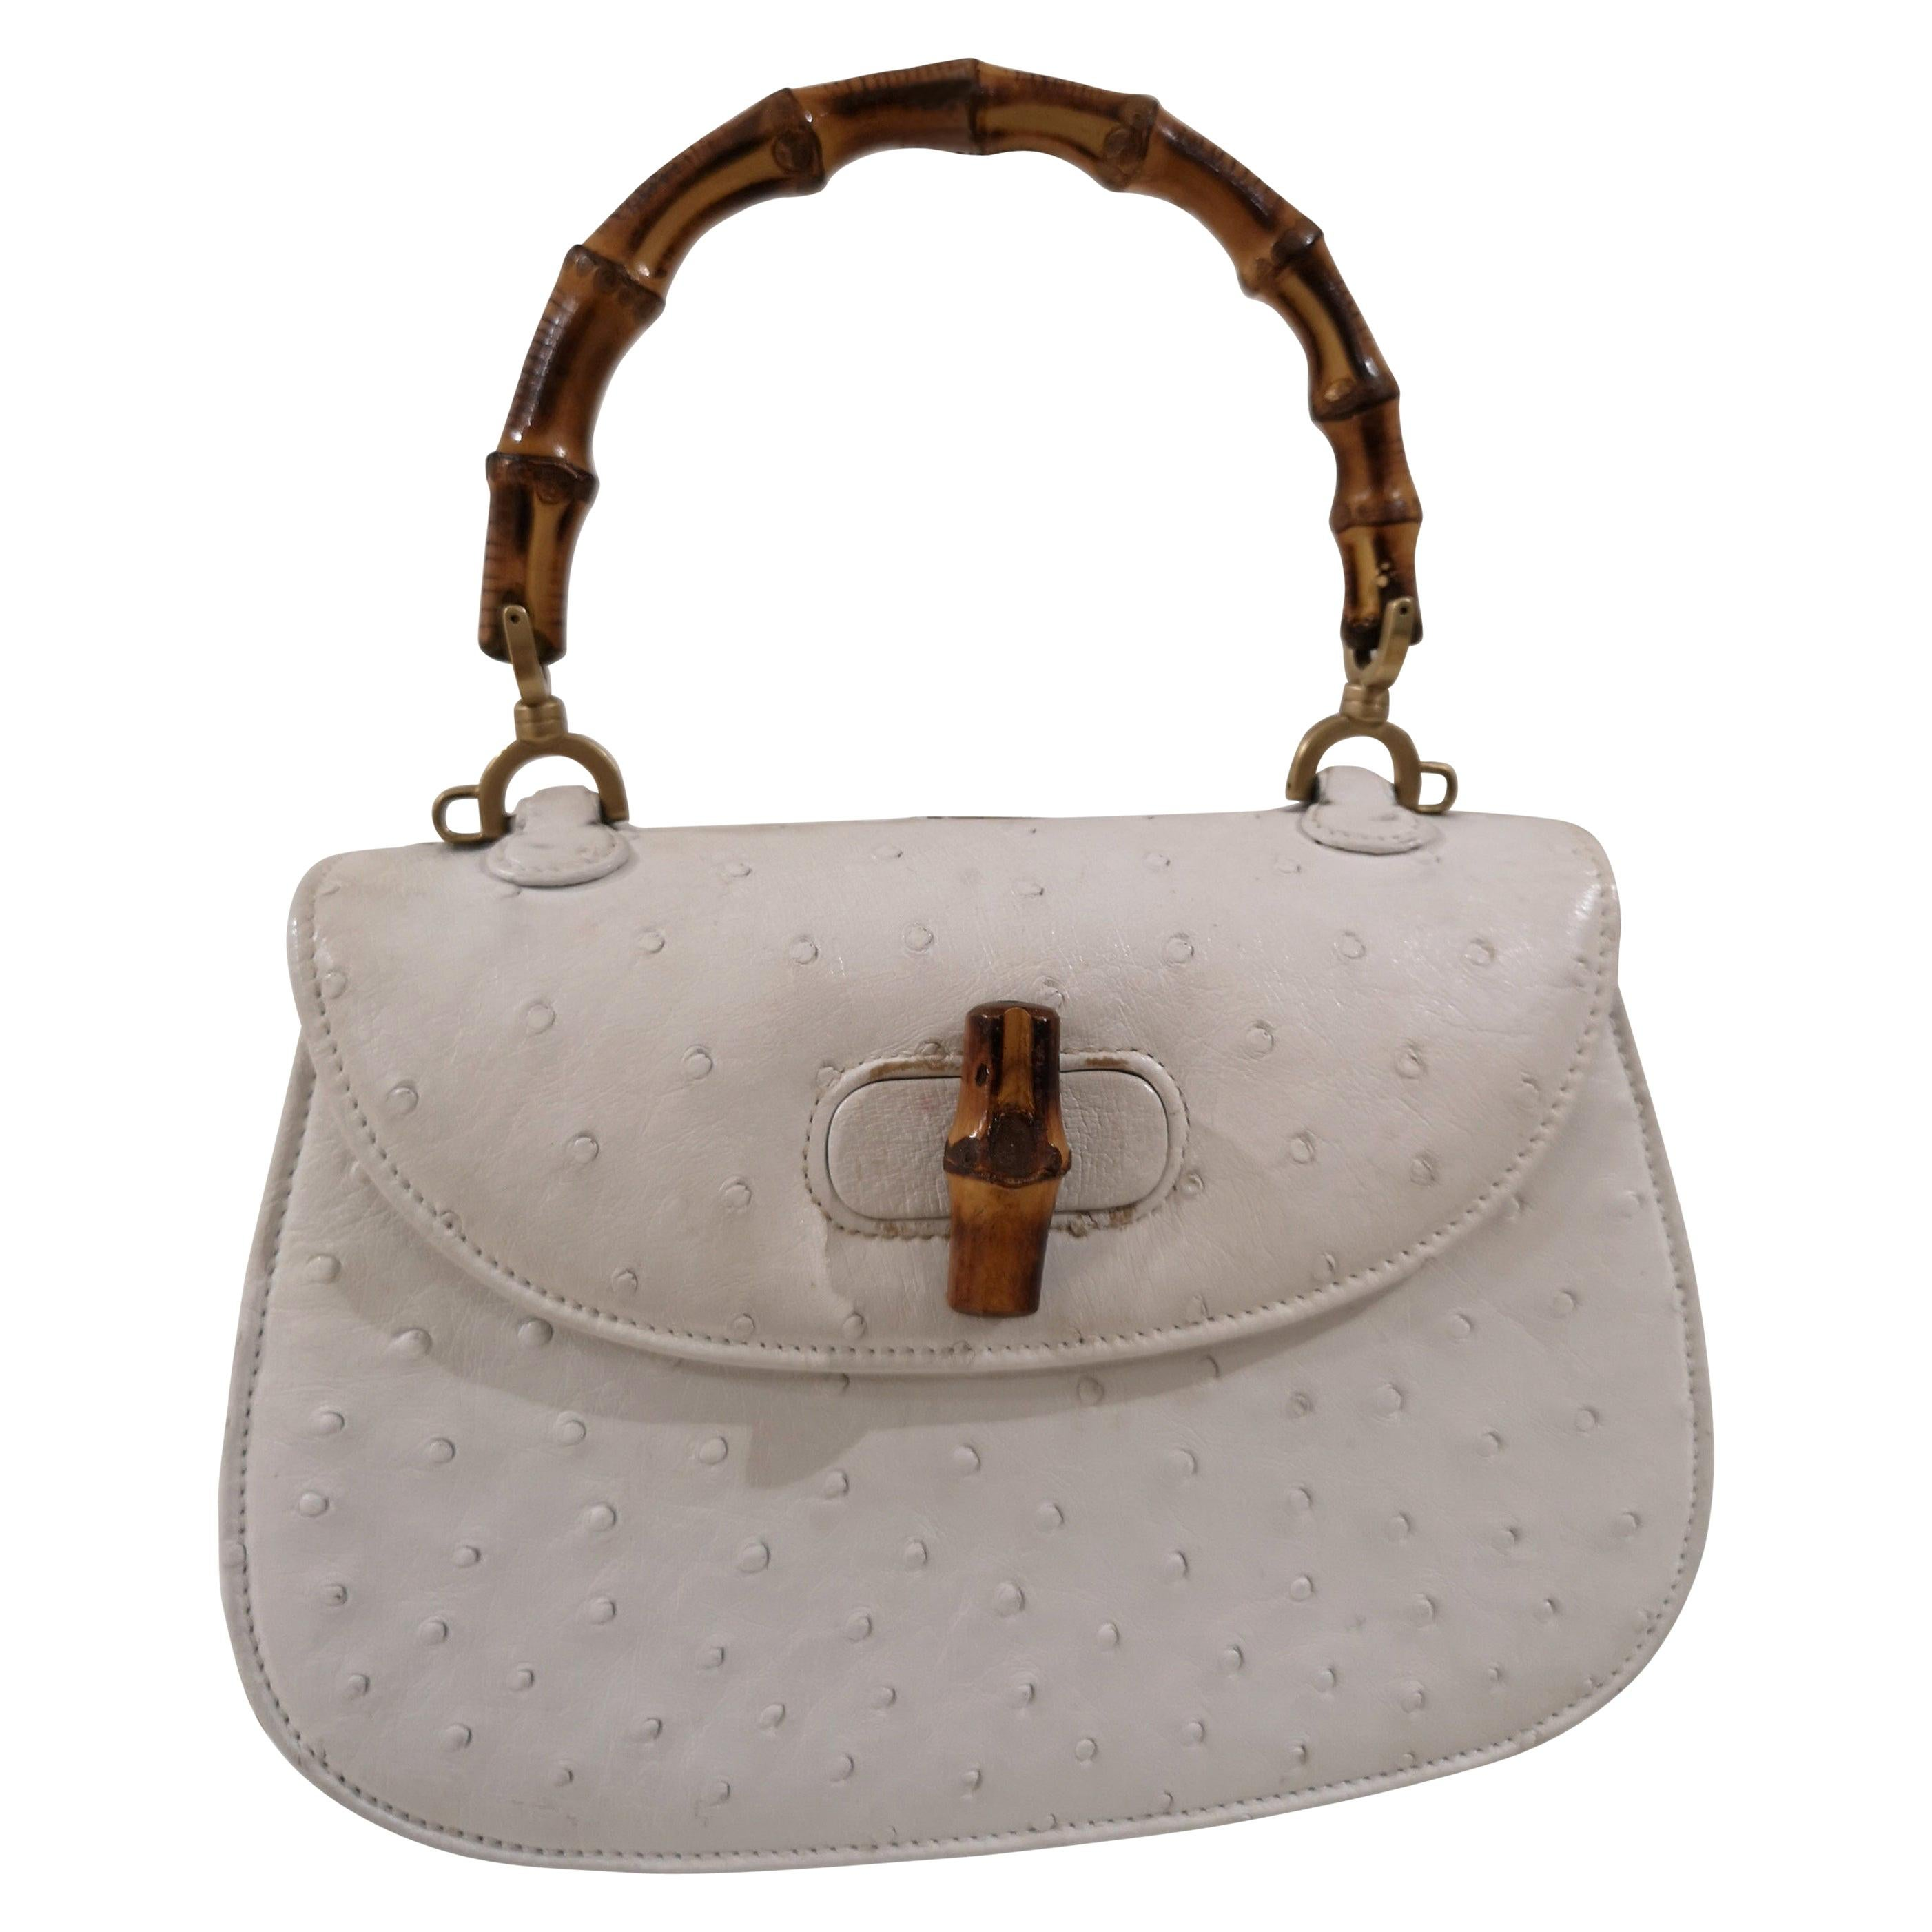 Gucci White Ostrich Leather Bamboo Bag